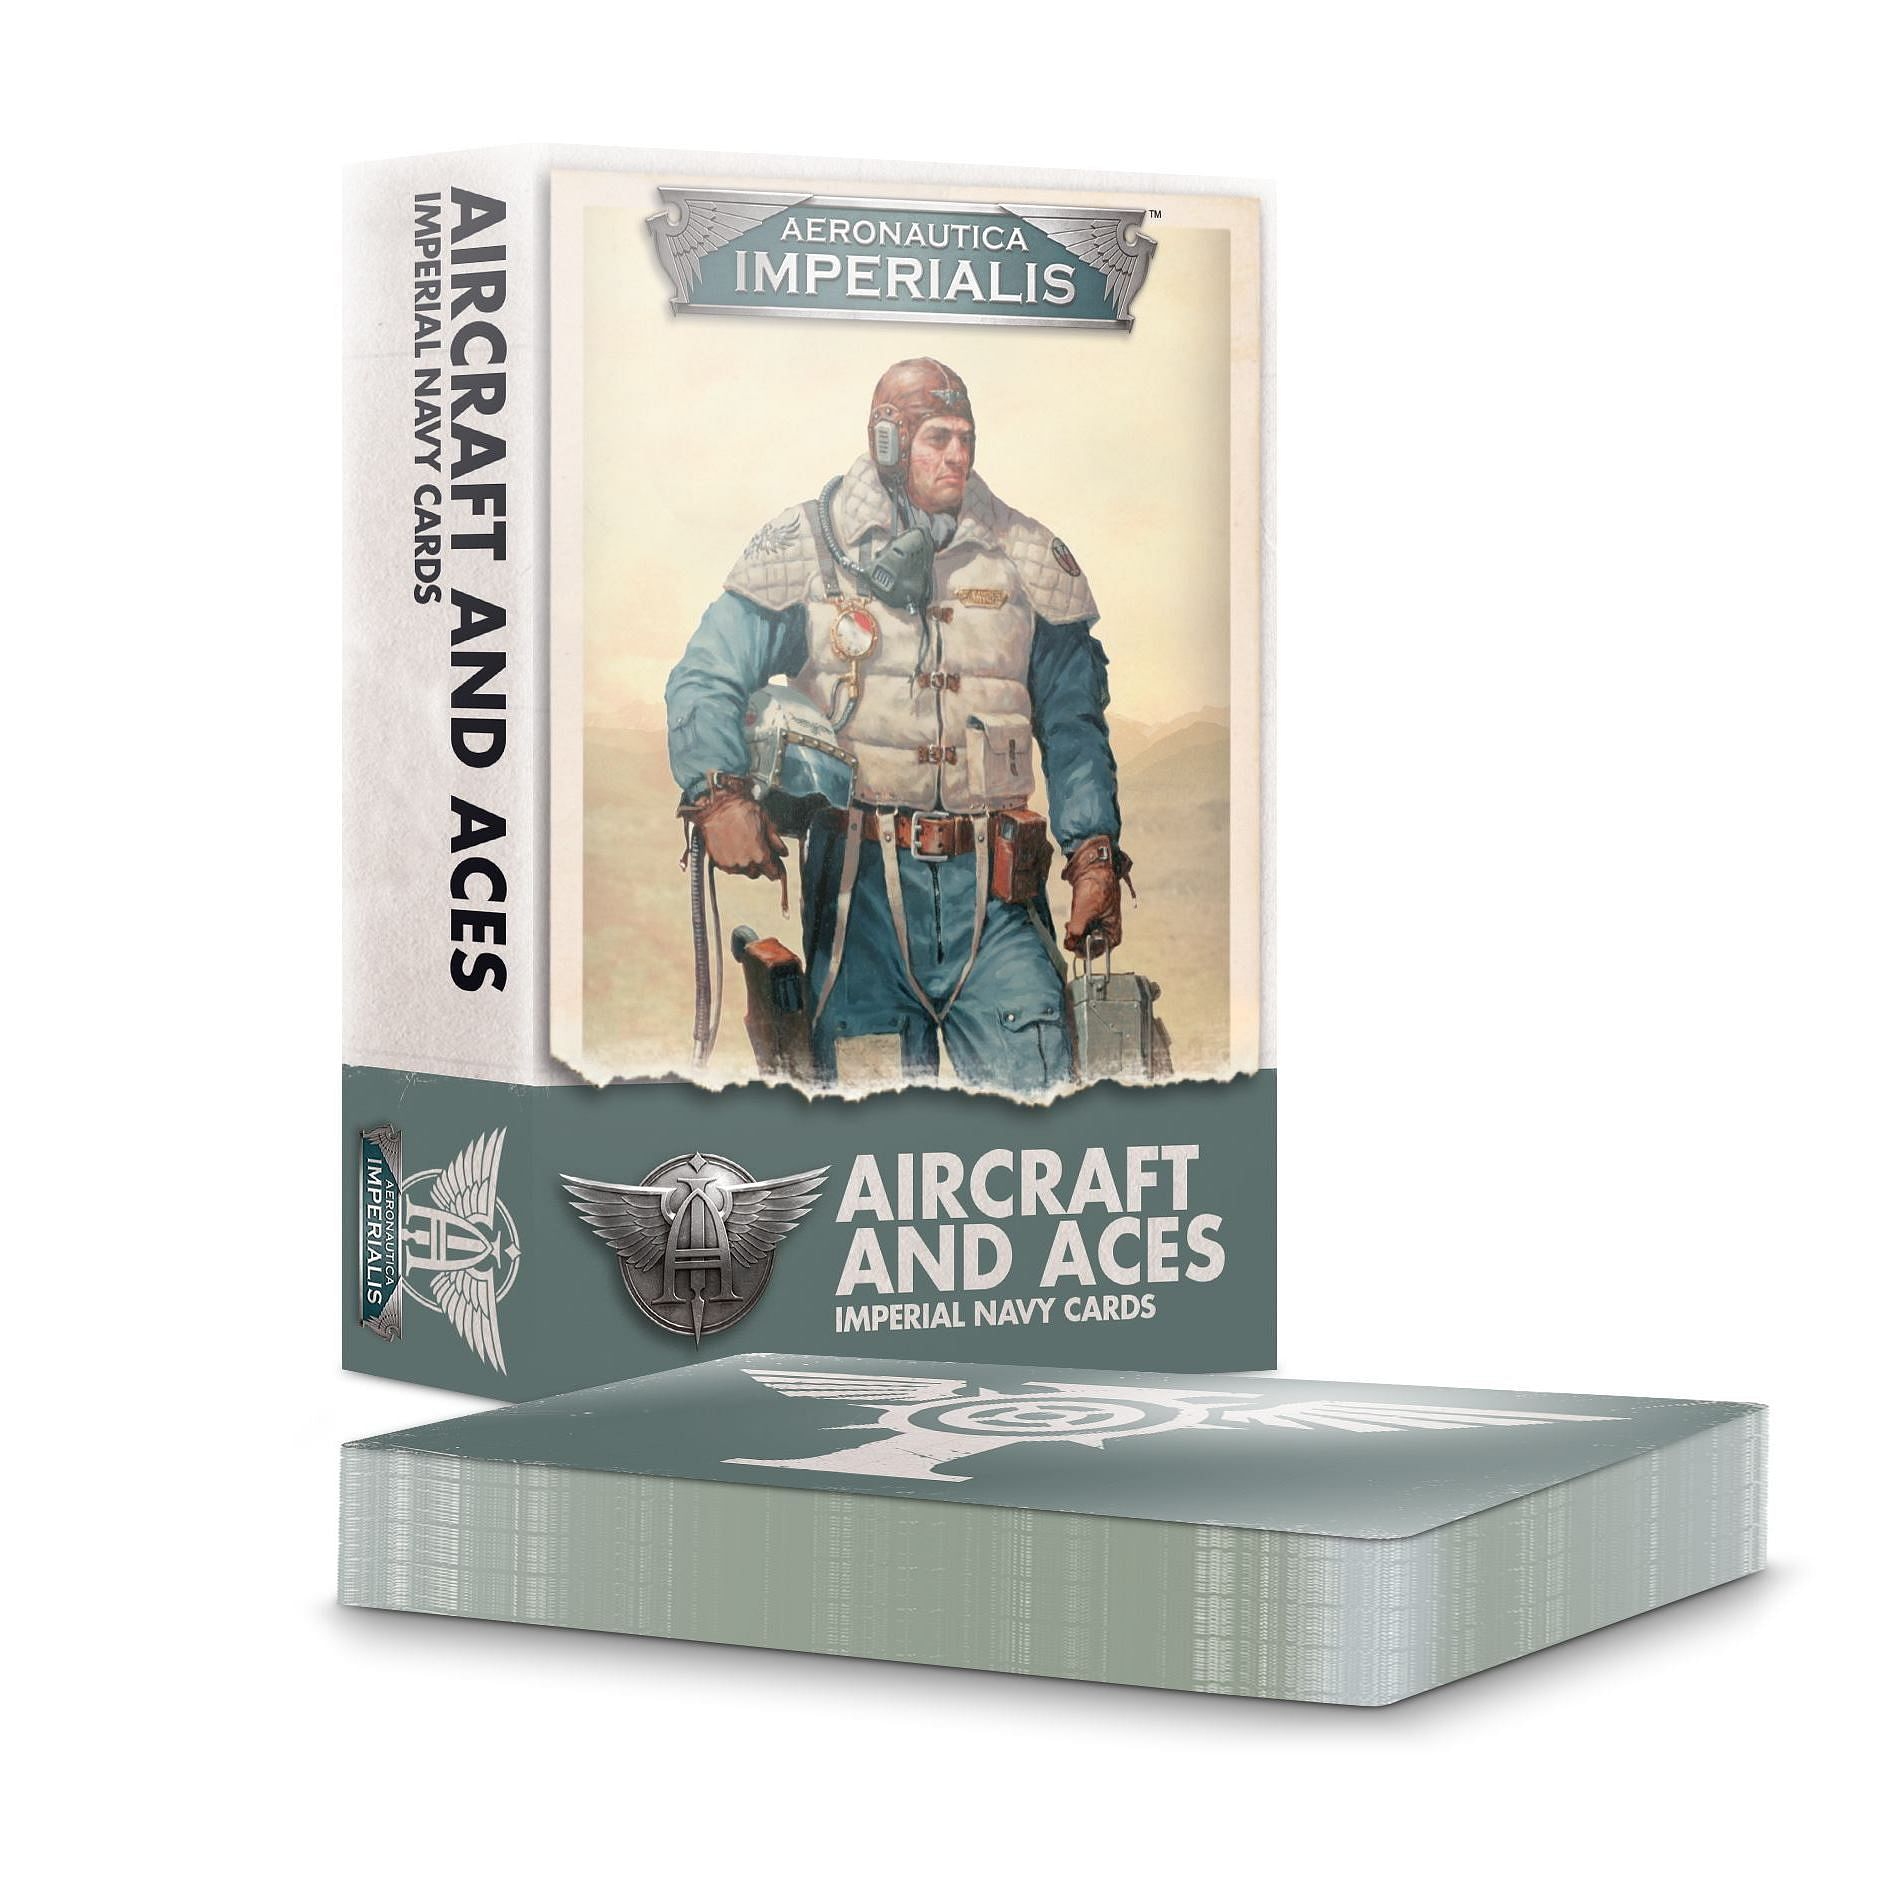 Aeronautica Imperialis: Aircraft and Aces - Imperial Navy Cards